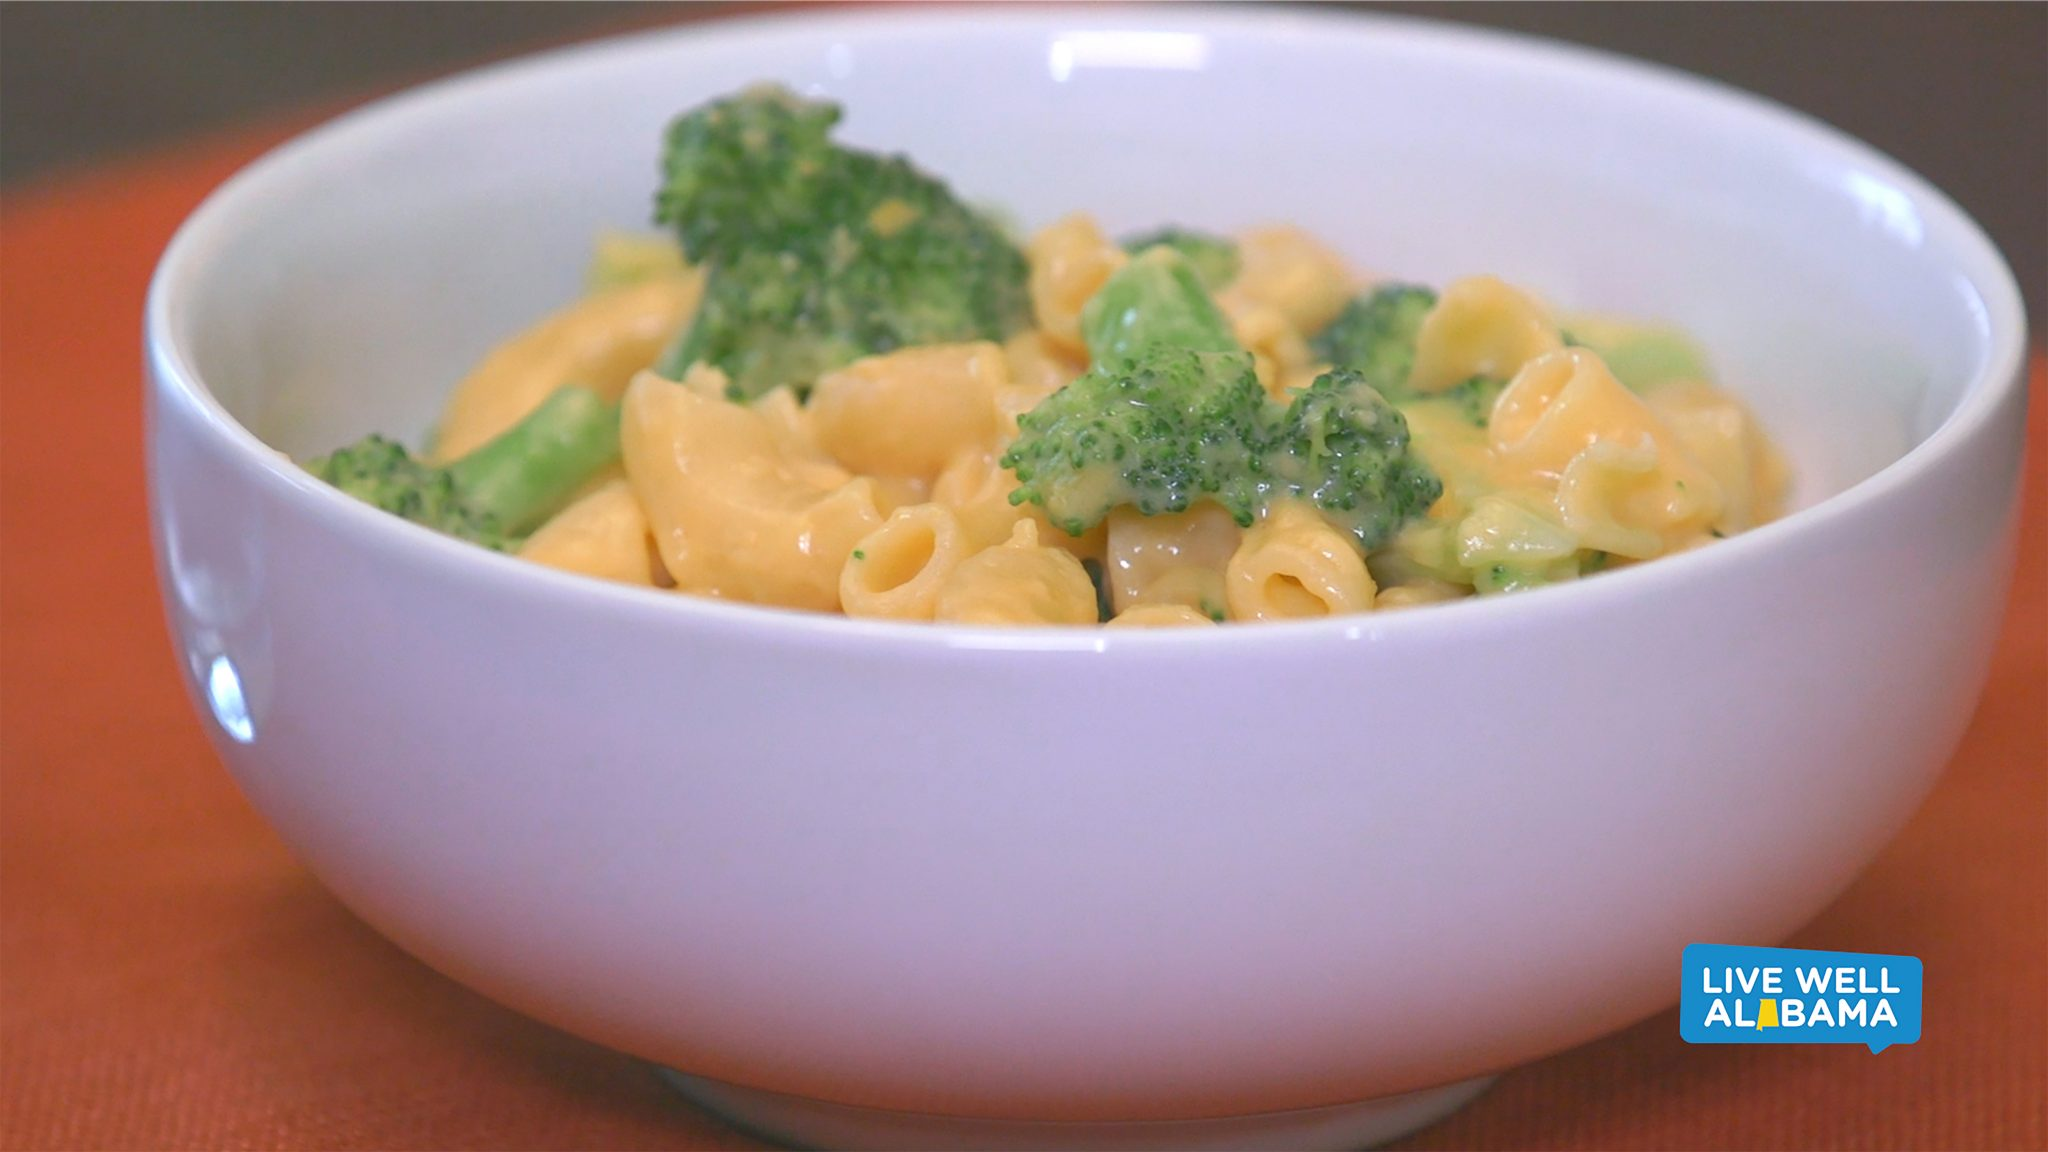 Live Well Alabama recipe, Power Mac and Cheese. Broccoli added.